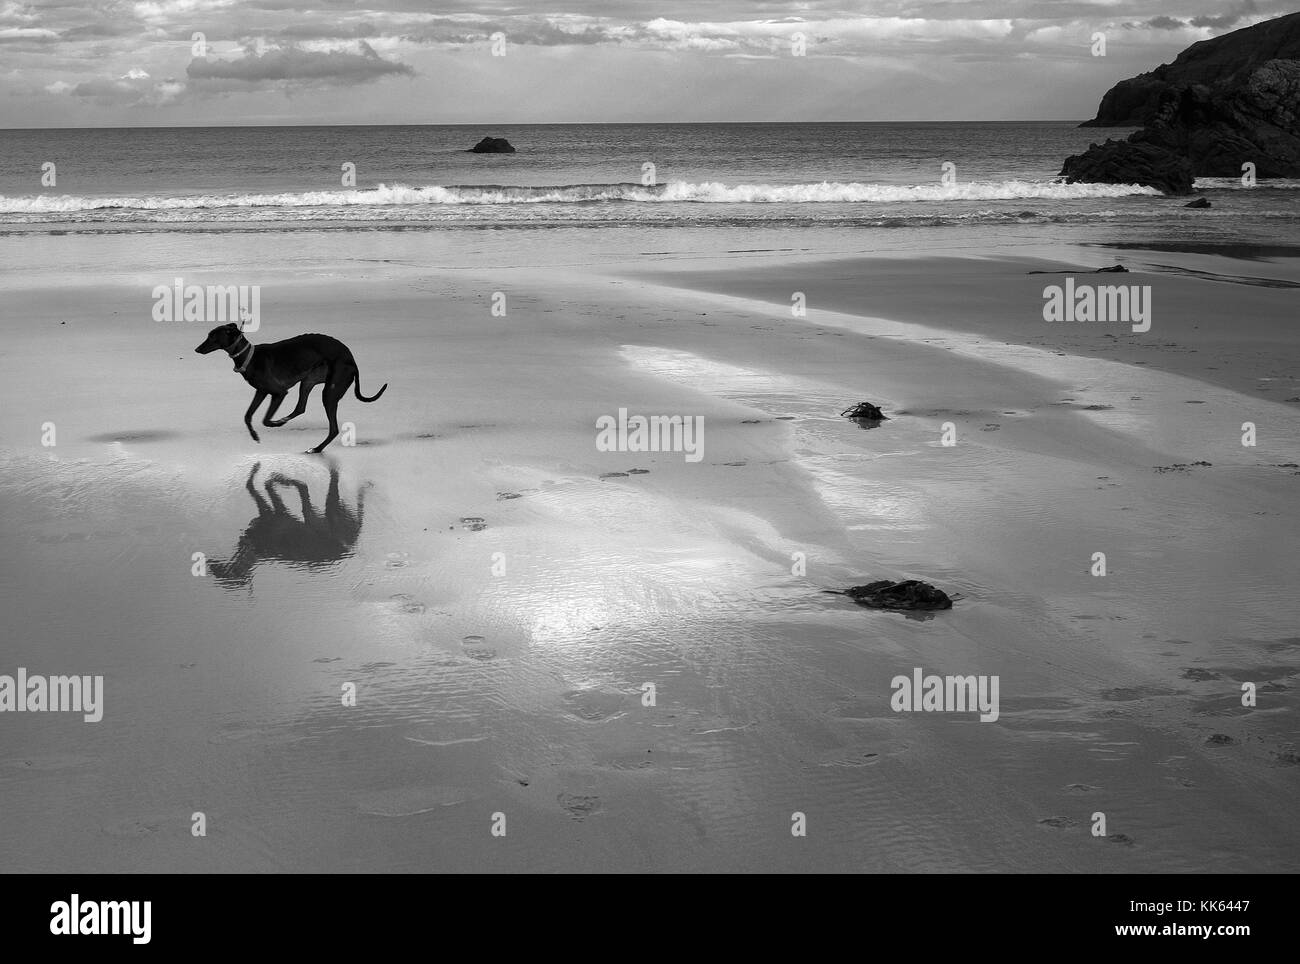 Greyhoung running free, Sango Sands, Durness, Scotland - Stock Image